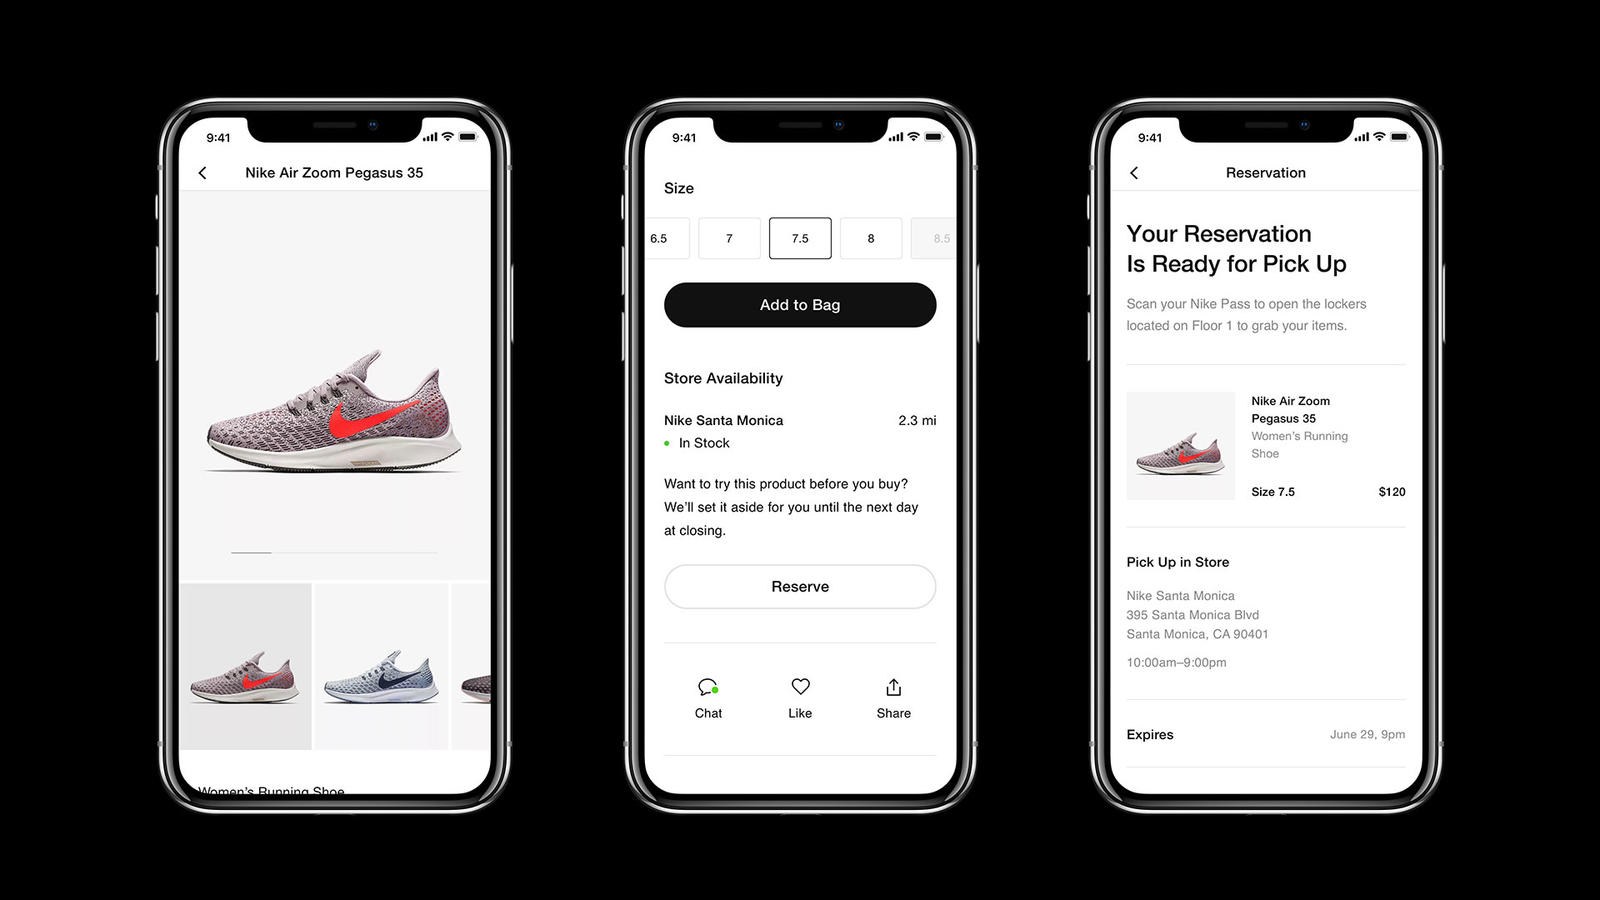 T Mobile Shop Berlin 3 Ways The Nike App At Retail Steps Up Your Shopping Experience